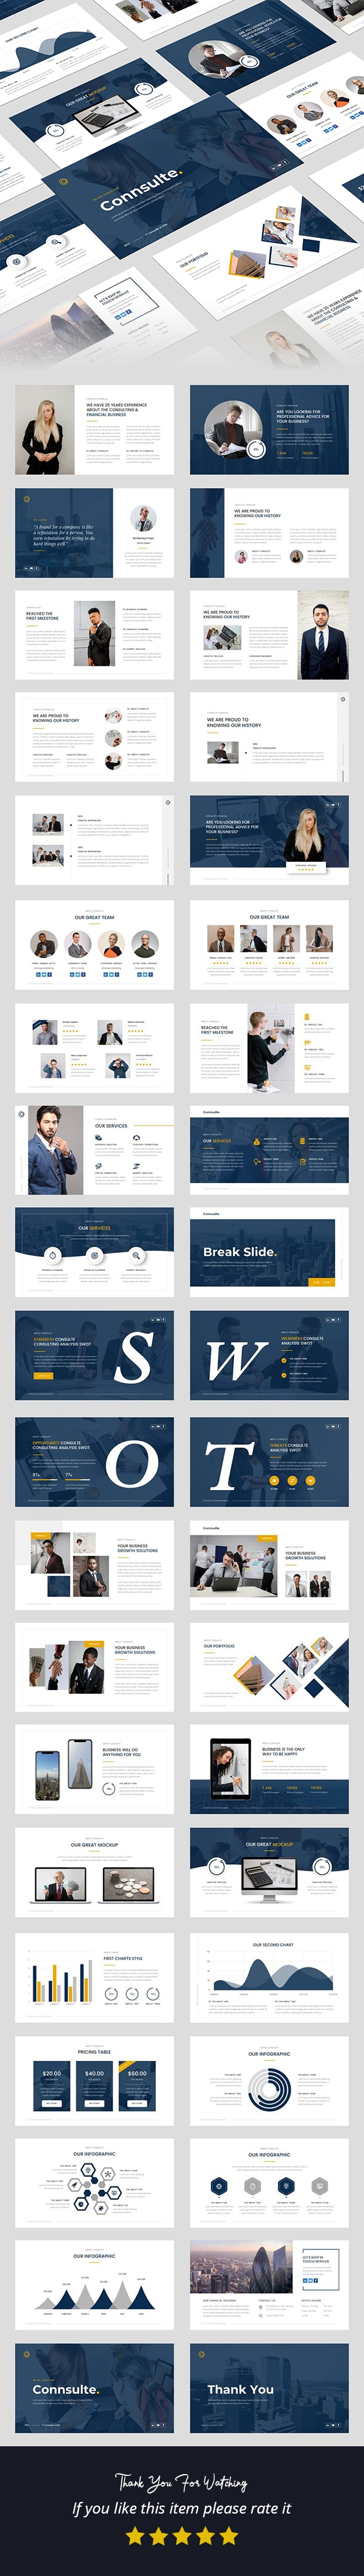 Consulte - Consulting & Finance PowerPoint Template